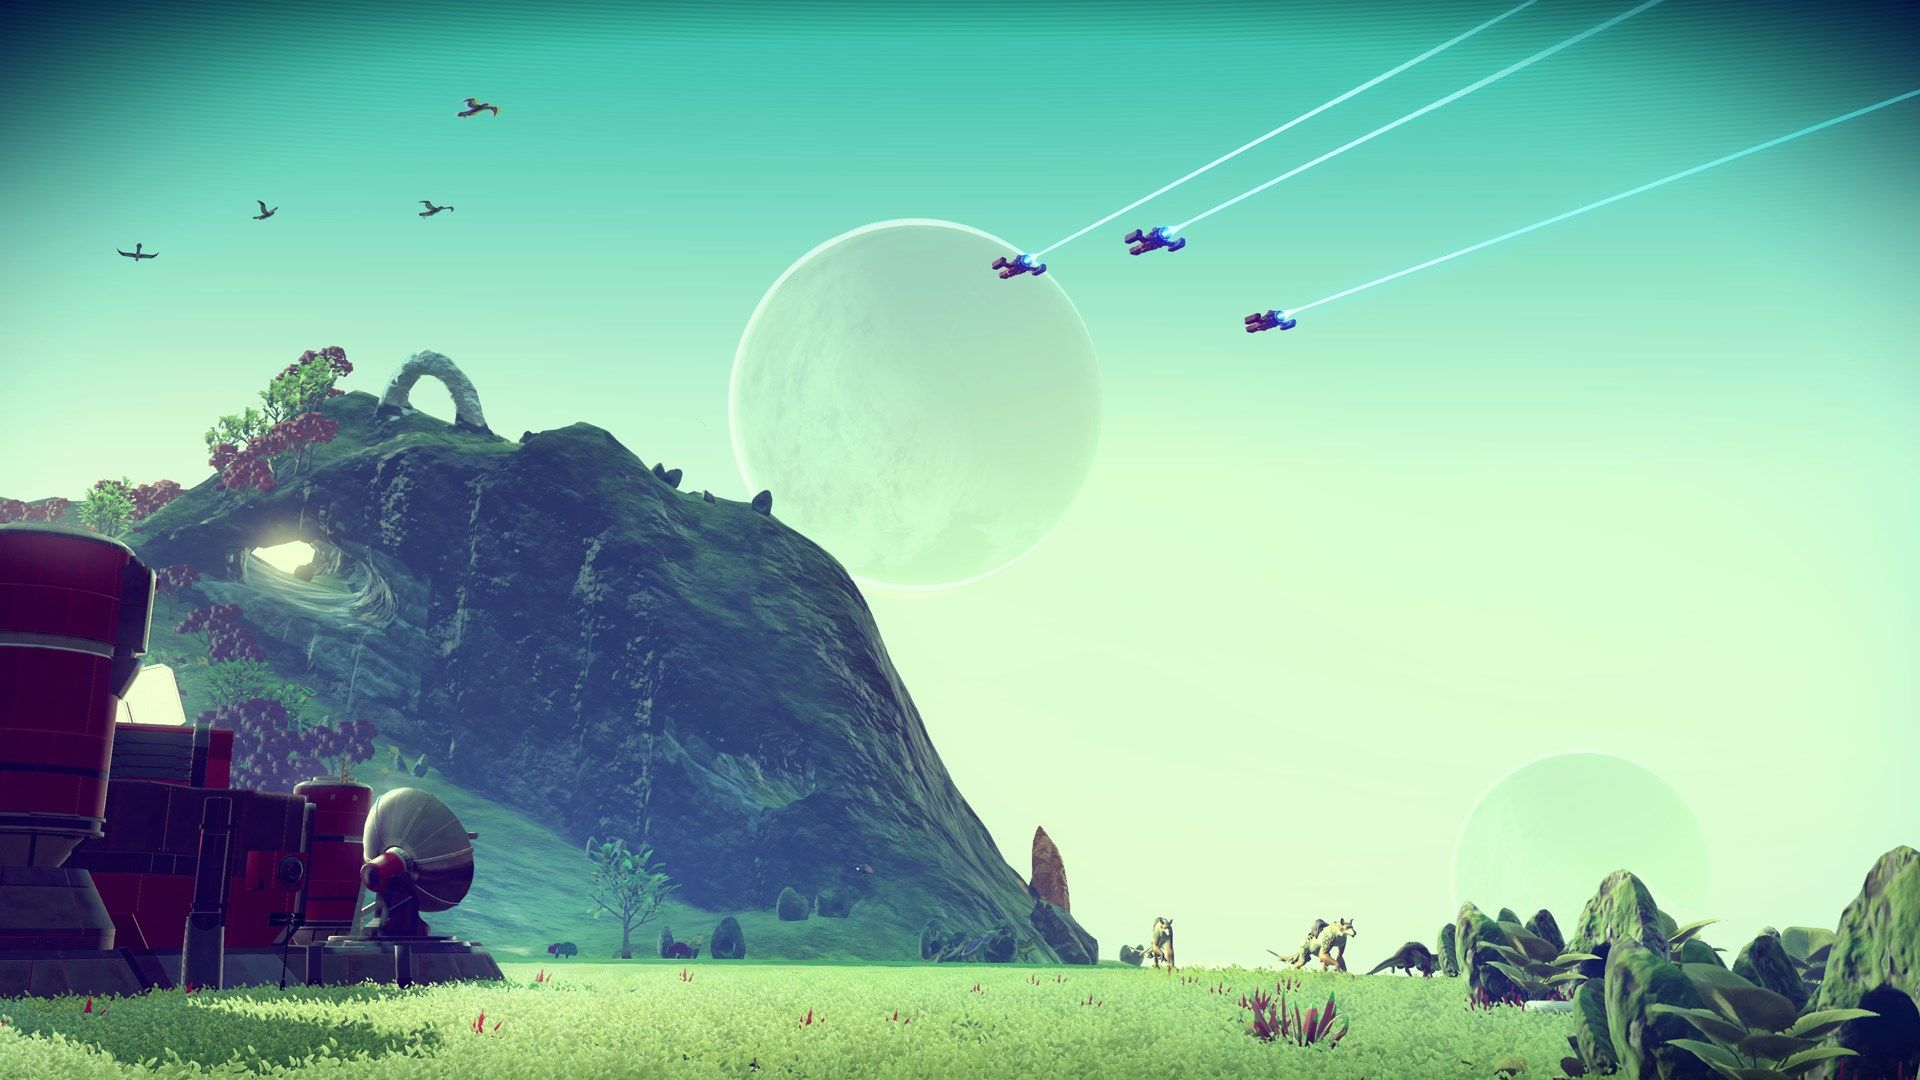 Pictures for Desktop: no mans sky picture, Eartha Sheldon 2017-03-26